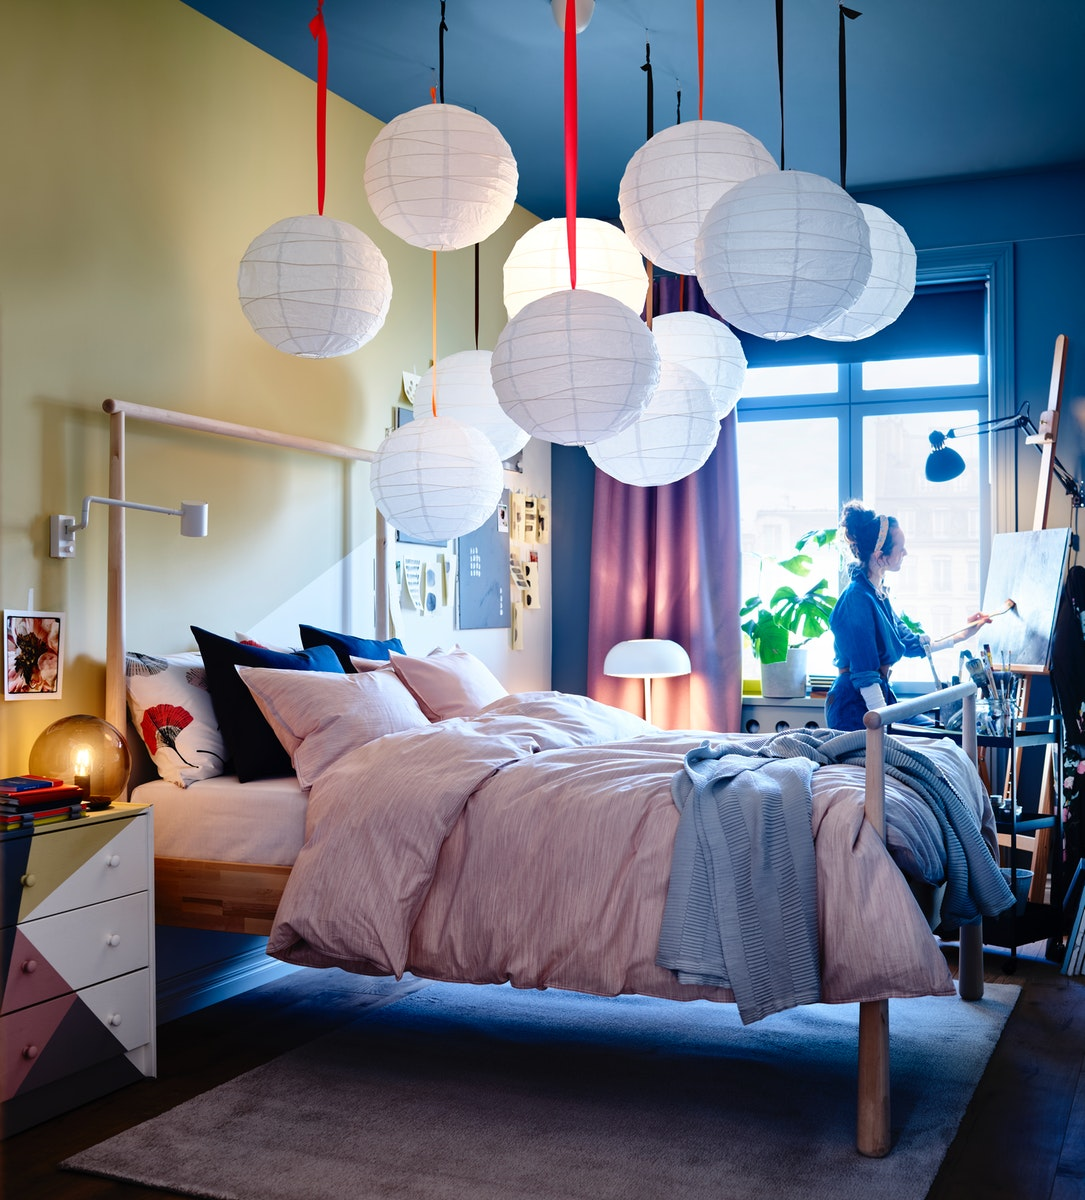 A creative getaway bedroom where ideas come to life